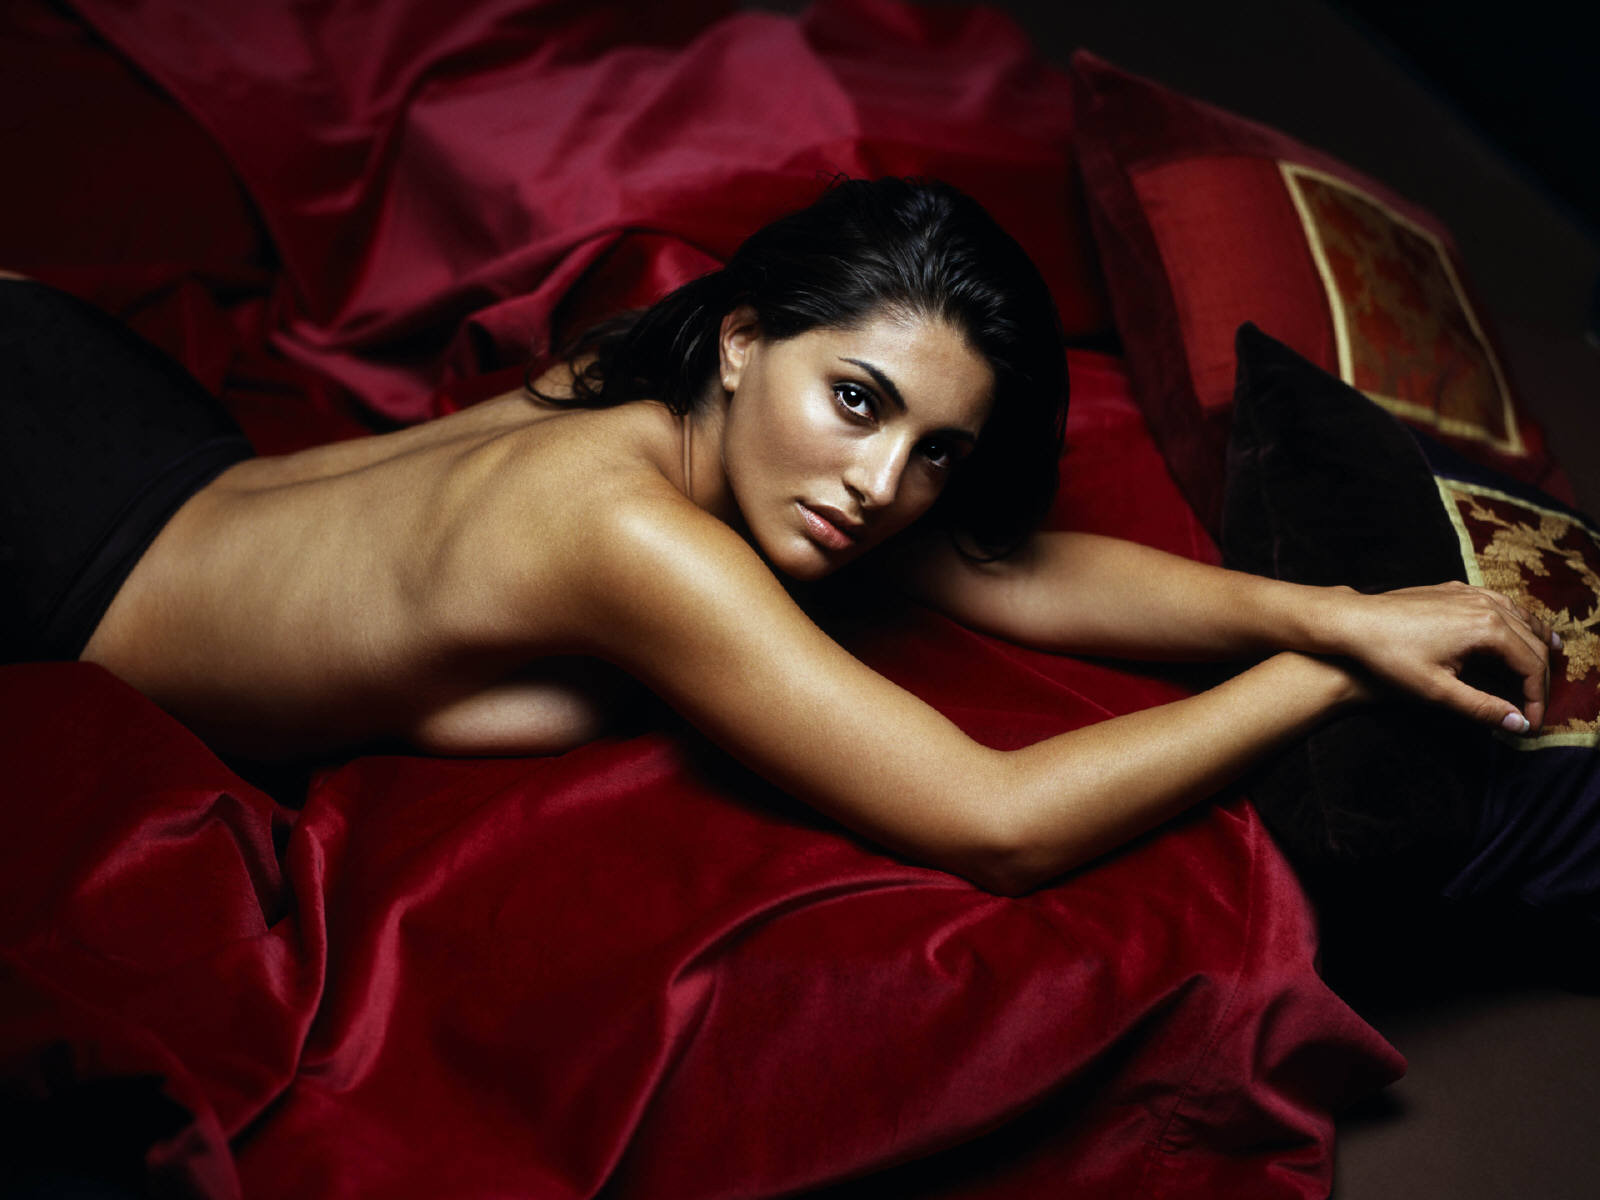 Girl bond caterina murino